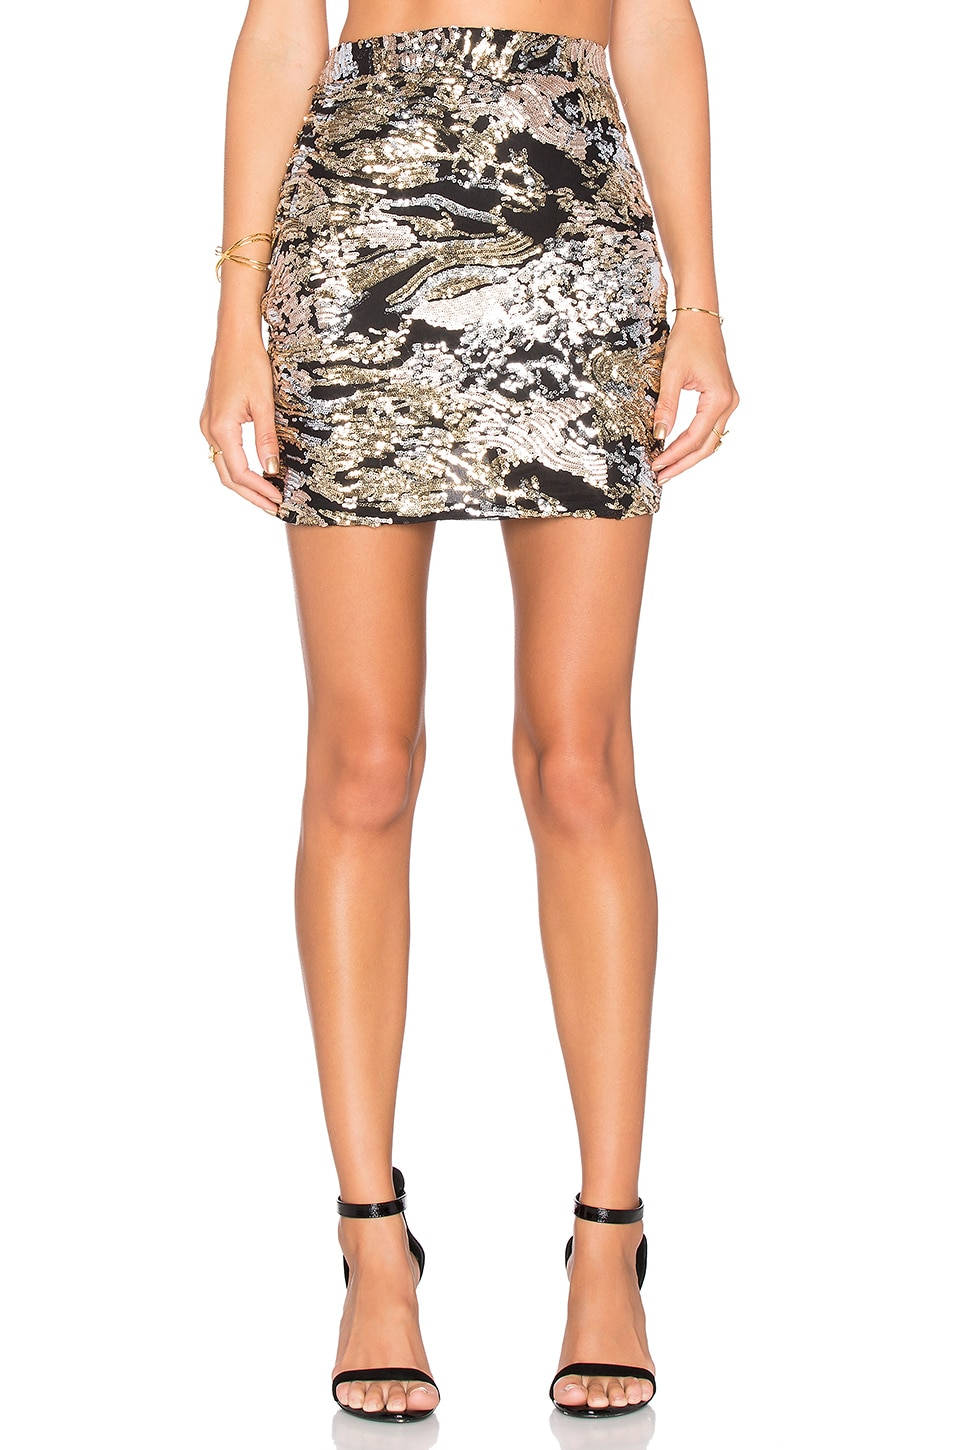 WYLDR Made To Party Mini Skirt in Multi